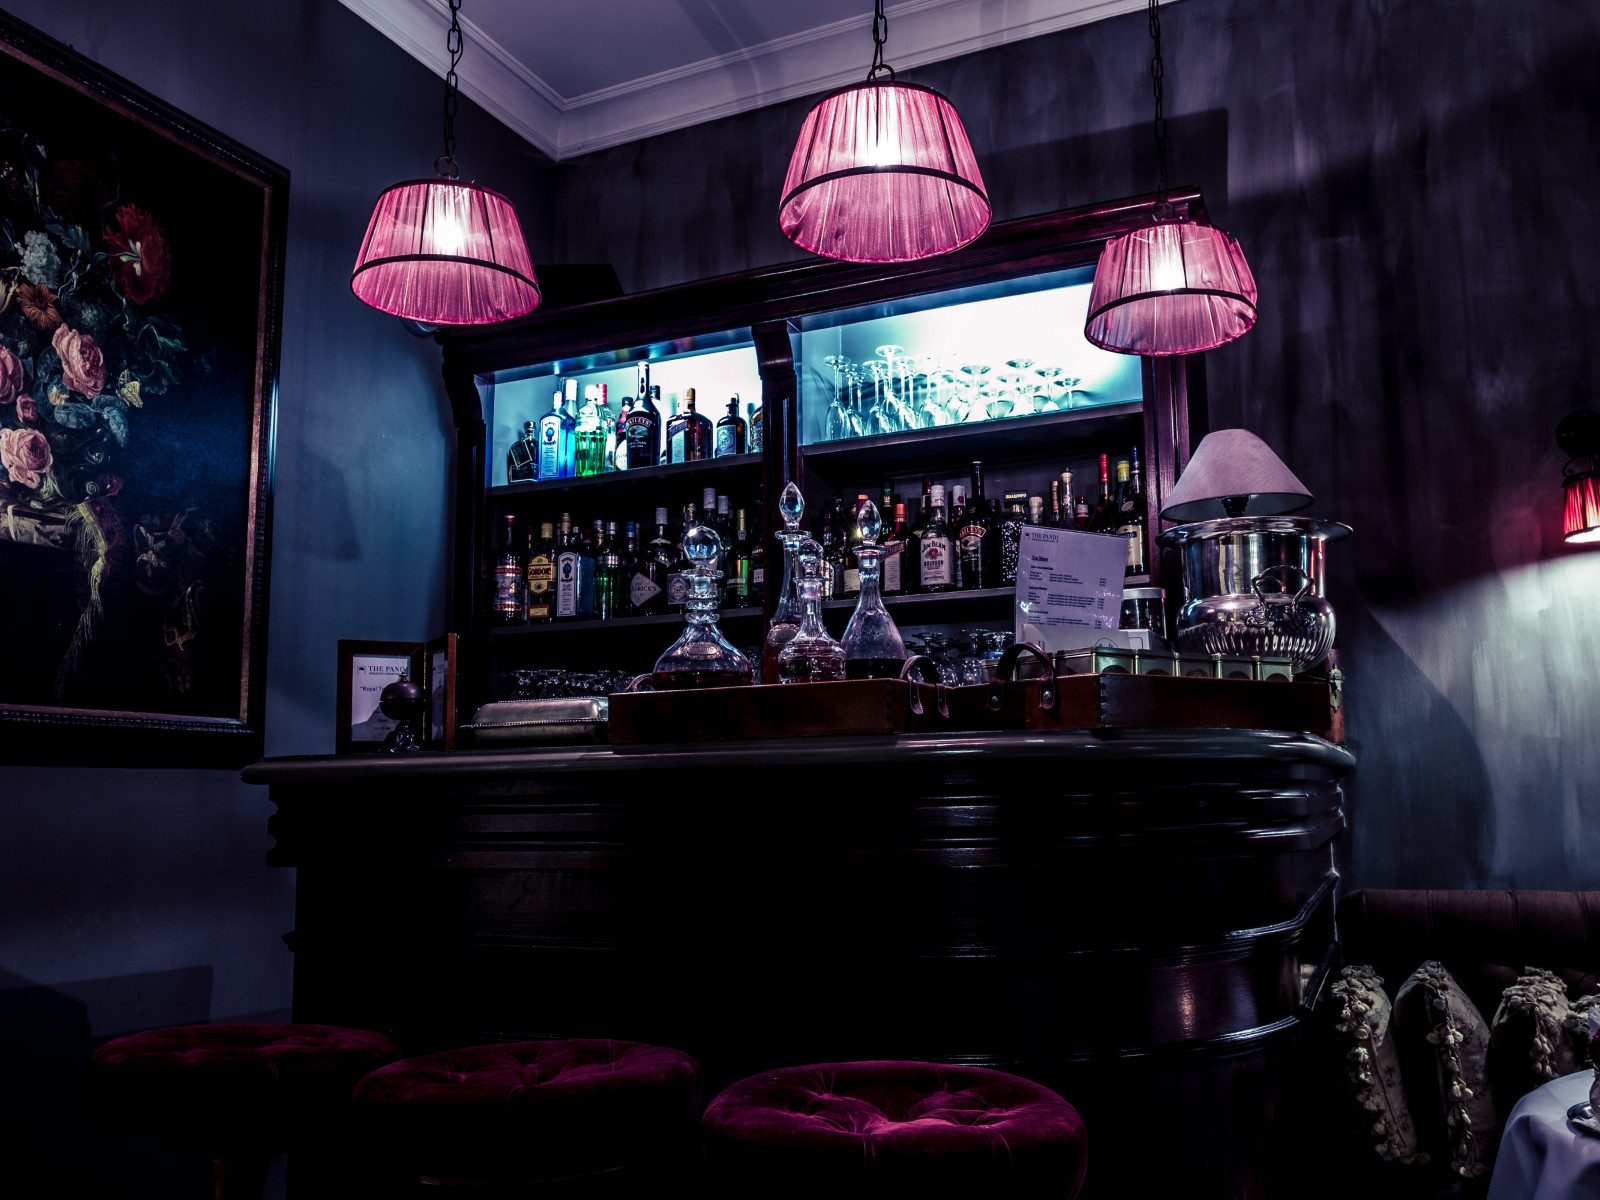 Interior bar design wallpaper 1600x1200